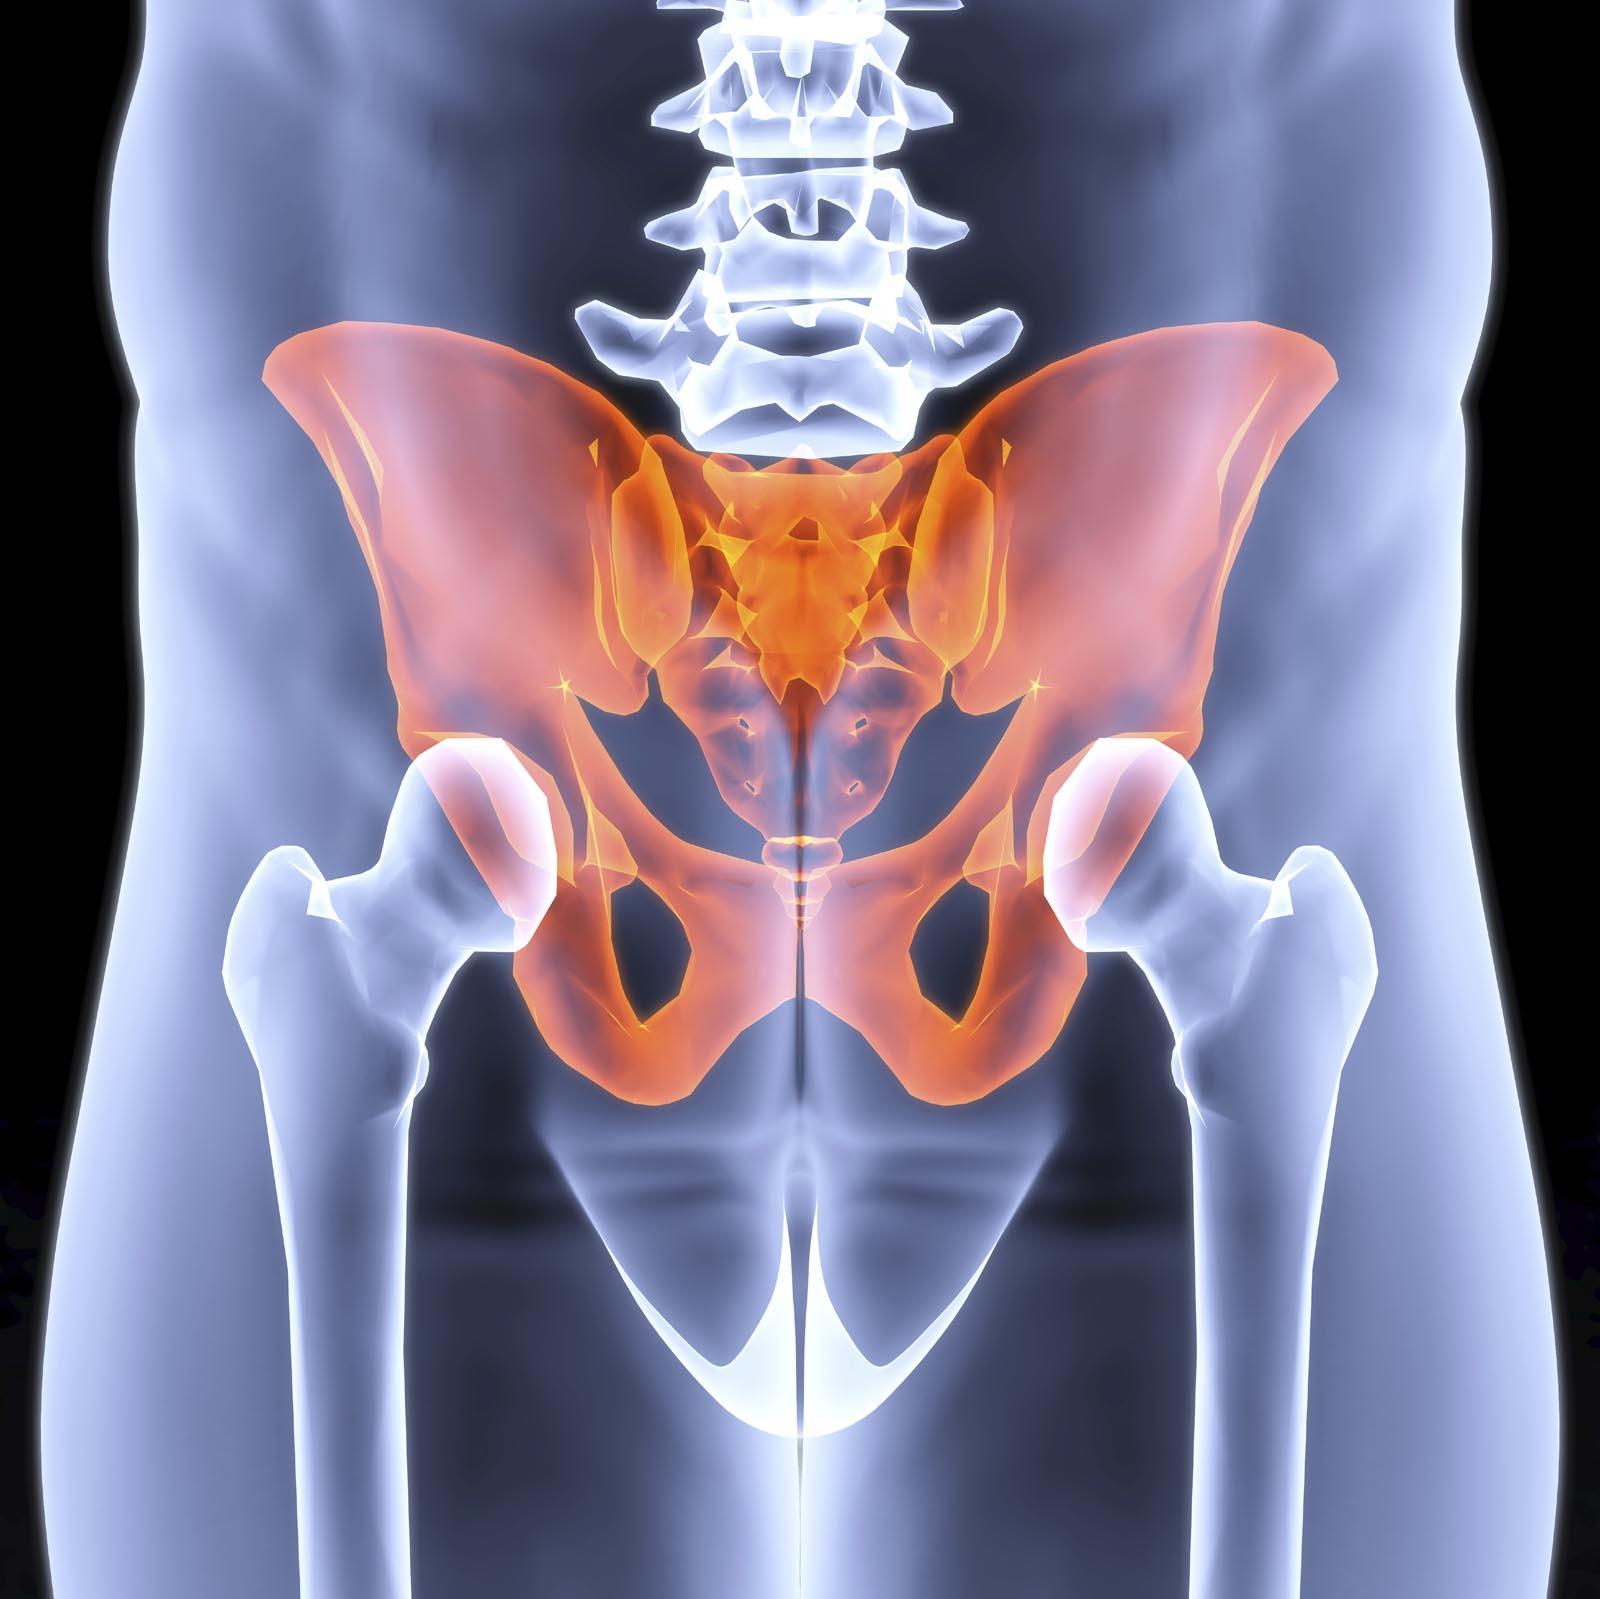 male pelvis under the X-rays. pelvis is highlighted in red.